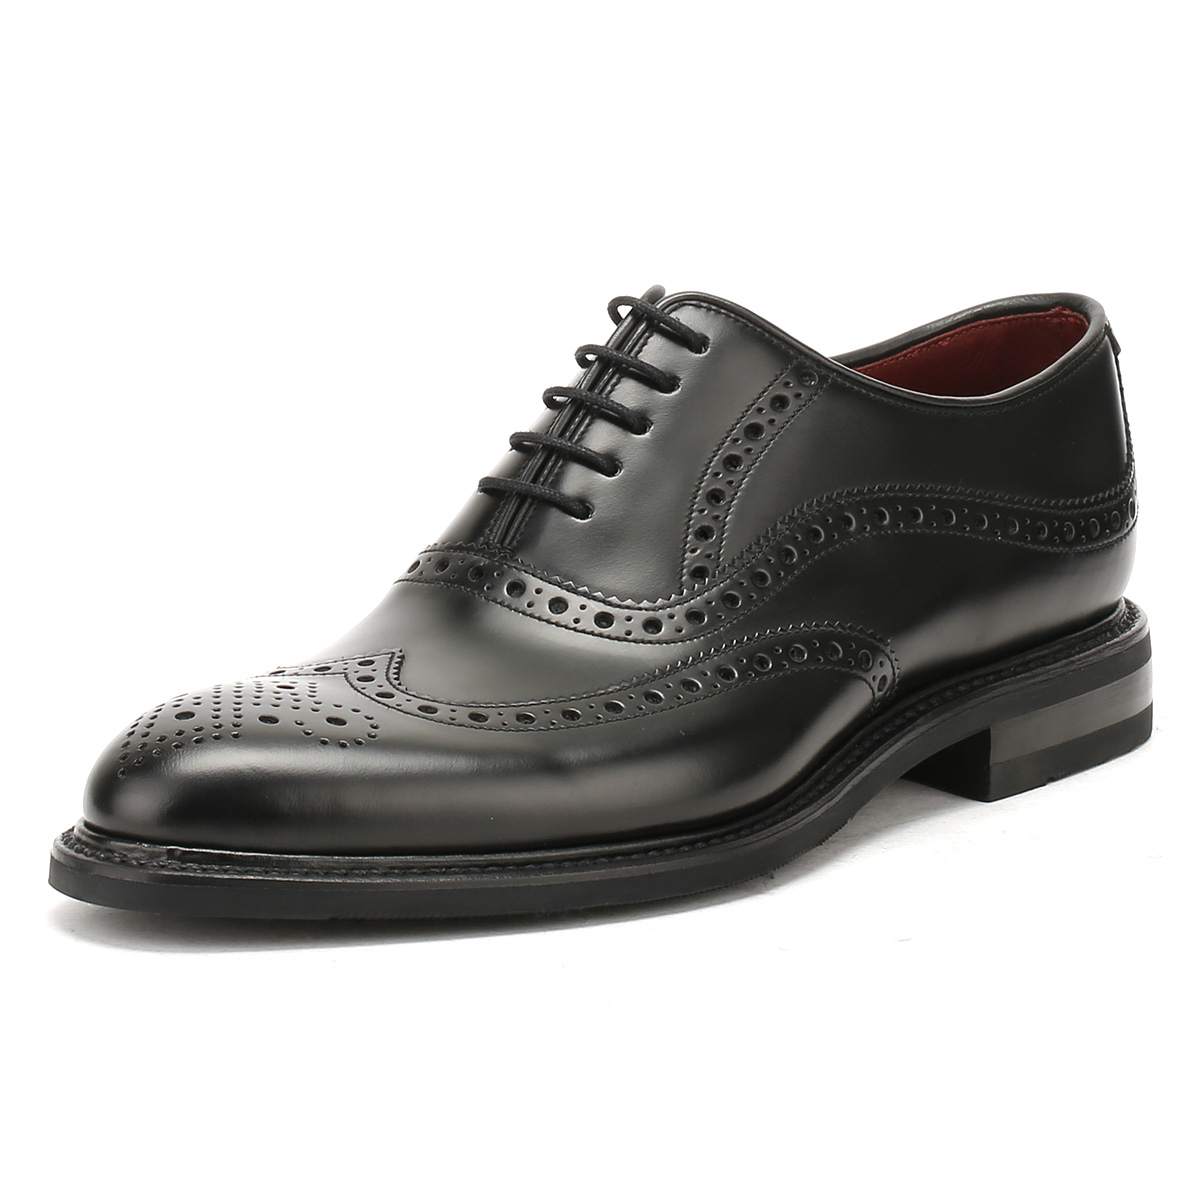 8d8bb3b7 Details about Loake Mens Black Demon Formal Brogue Oxford Shoes,  Handcrafted & Goodyear Welted